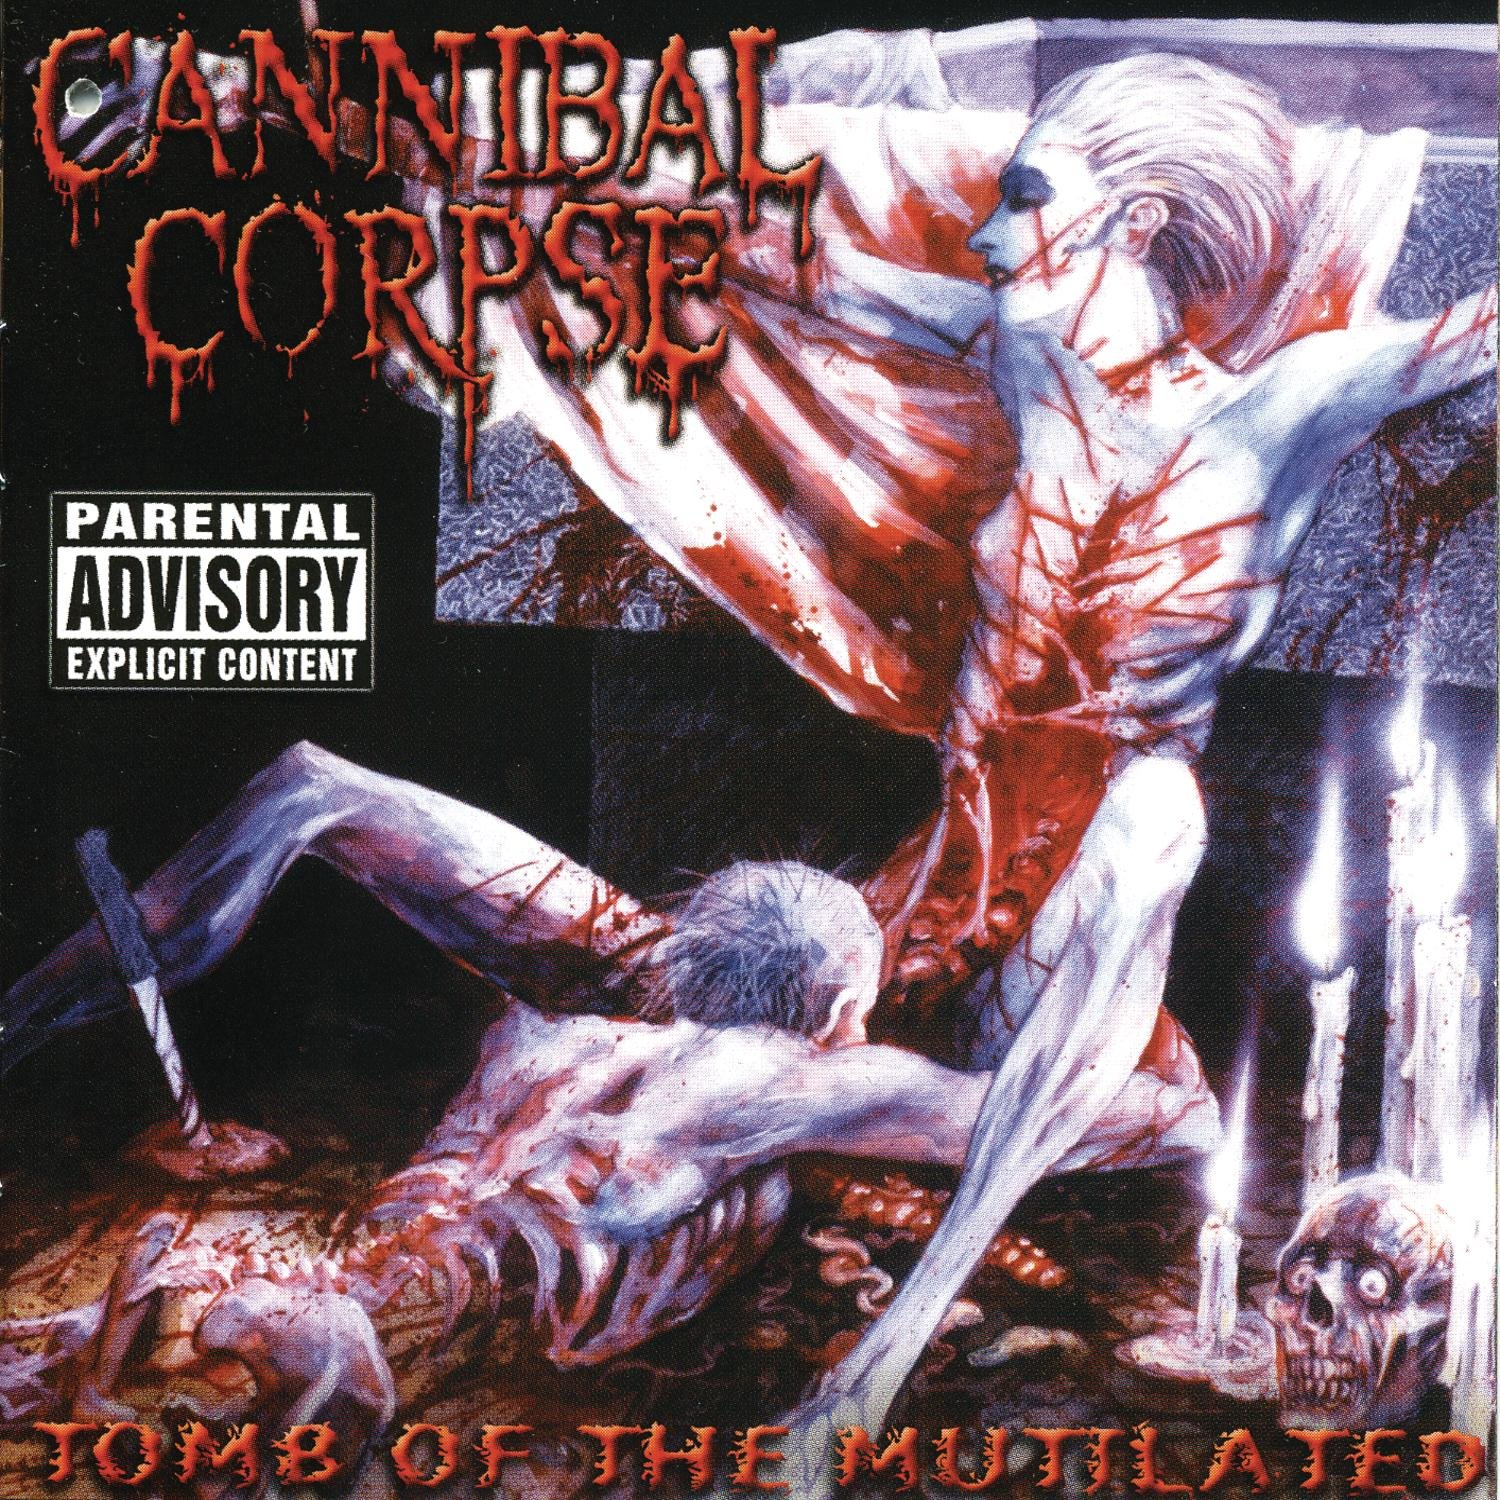 Heavy Metal Is Anti White, Anti Tradition, Is Jewish & Gay cannibal corpse White Nationalism  us canada politics government politics news europe